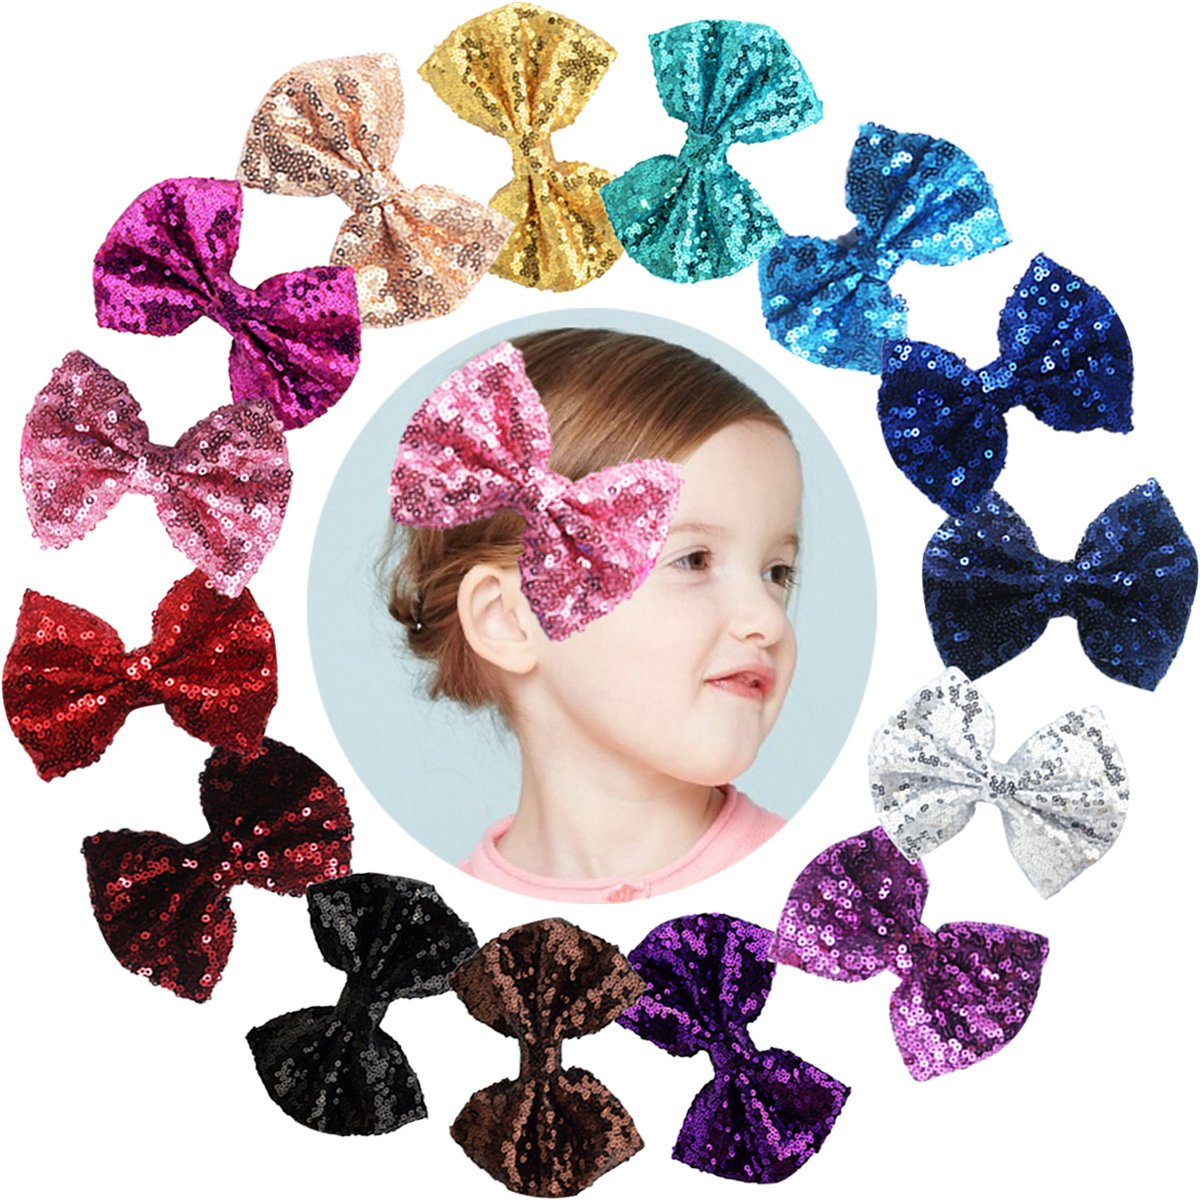 Party Hair Bows Clips for Girls-15pcs Bling Sparkly Glitter Sequins Big 4'' Hair Bows Alligator Hair Clips-Nylon Mesh Ribbon Bowknot Hairpins for Baby Girls Kids Children